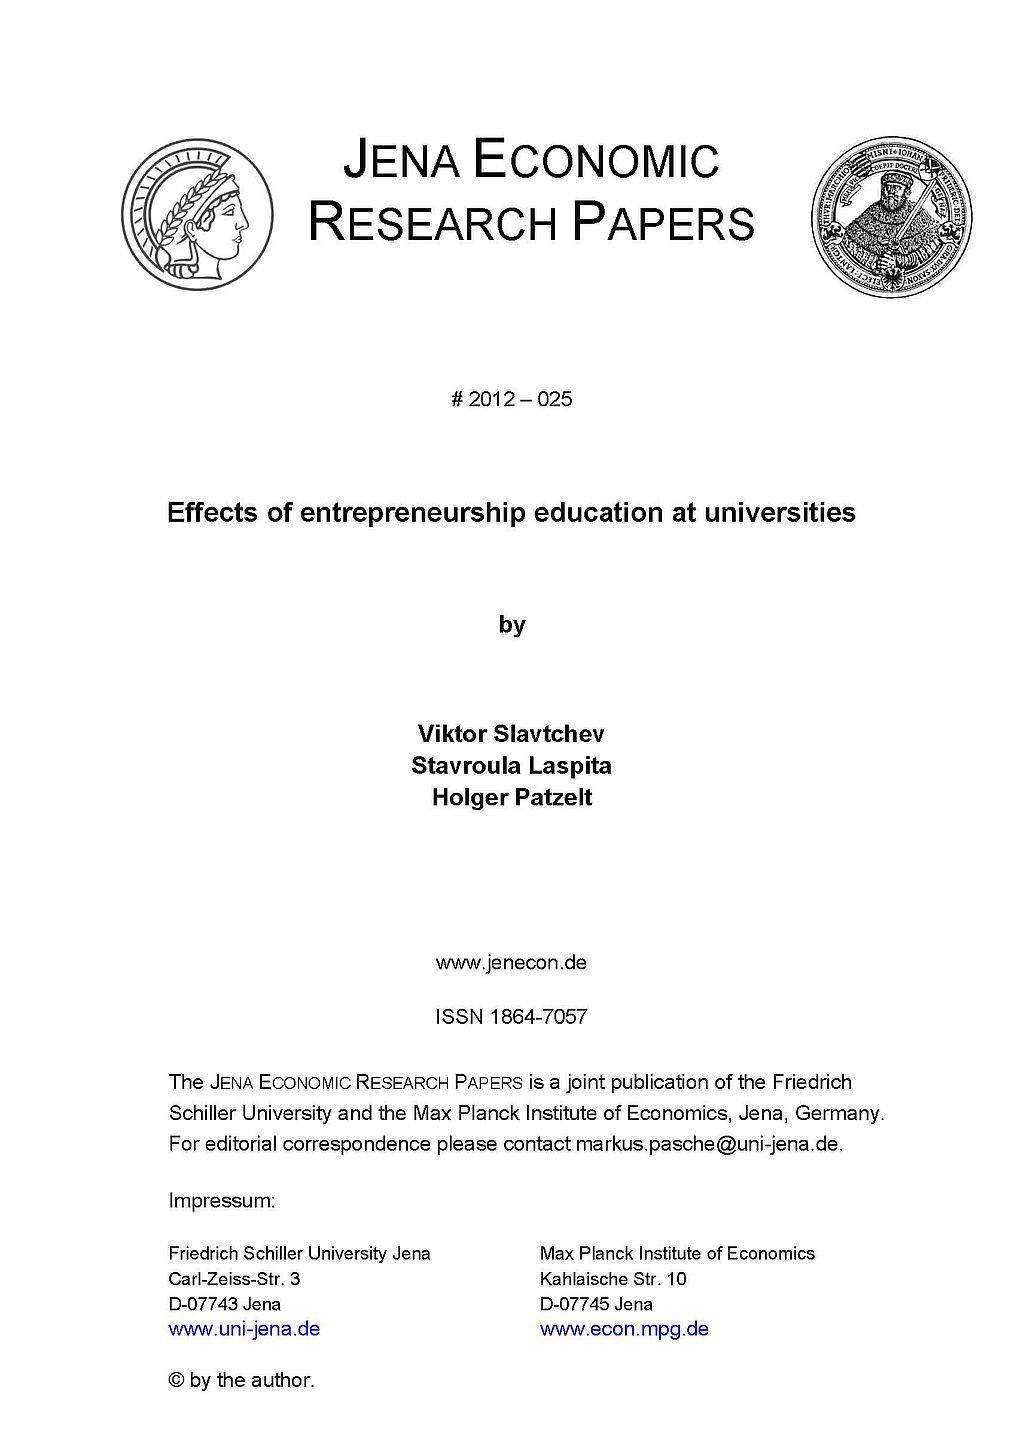 cover_Jena-Economic-Research-Papers_2012-25.jpg